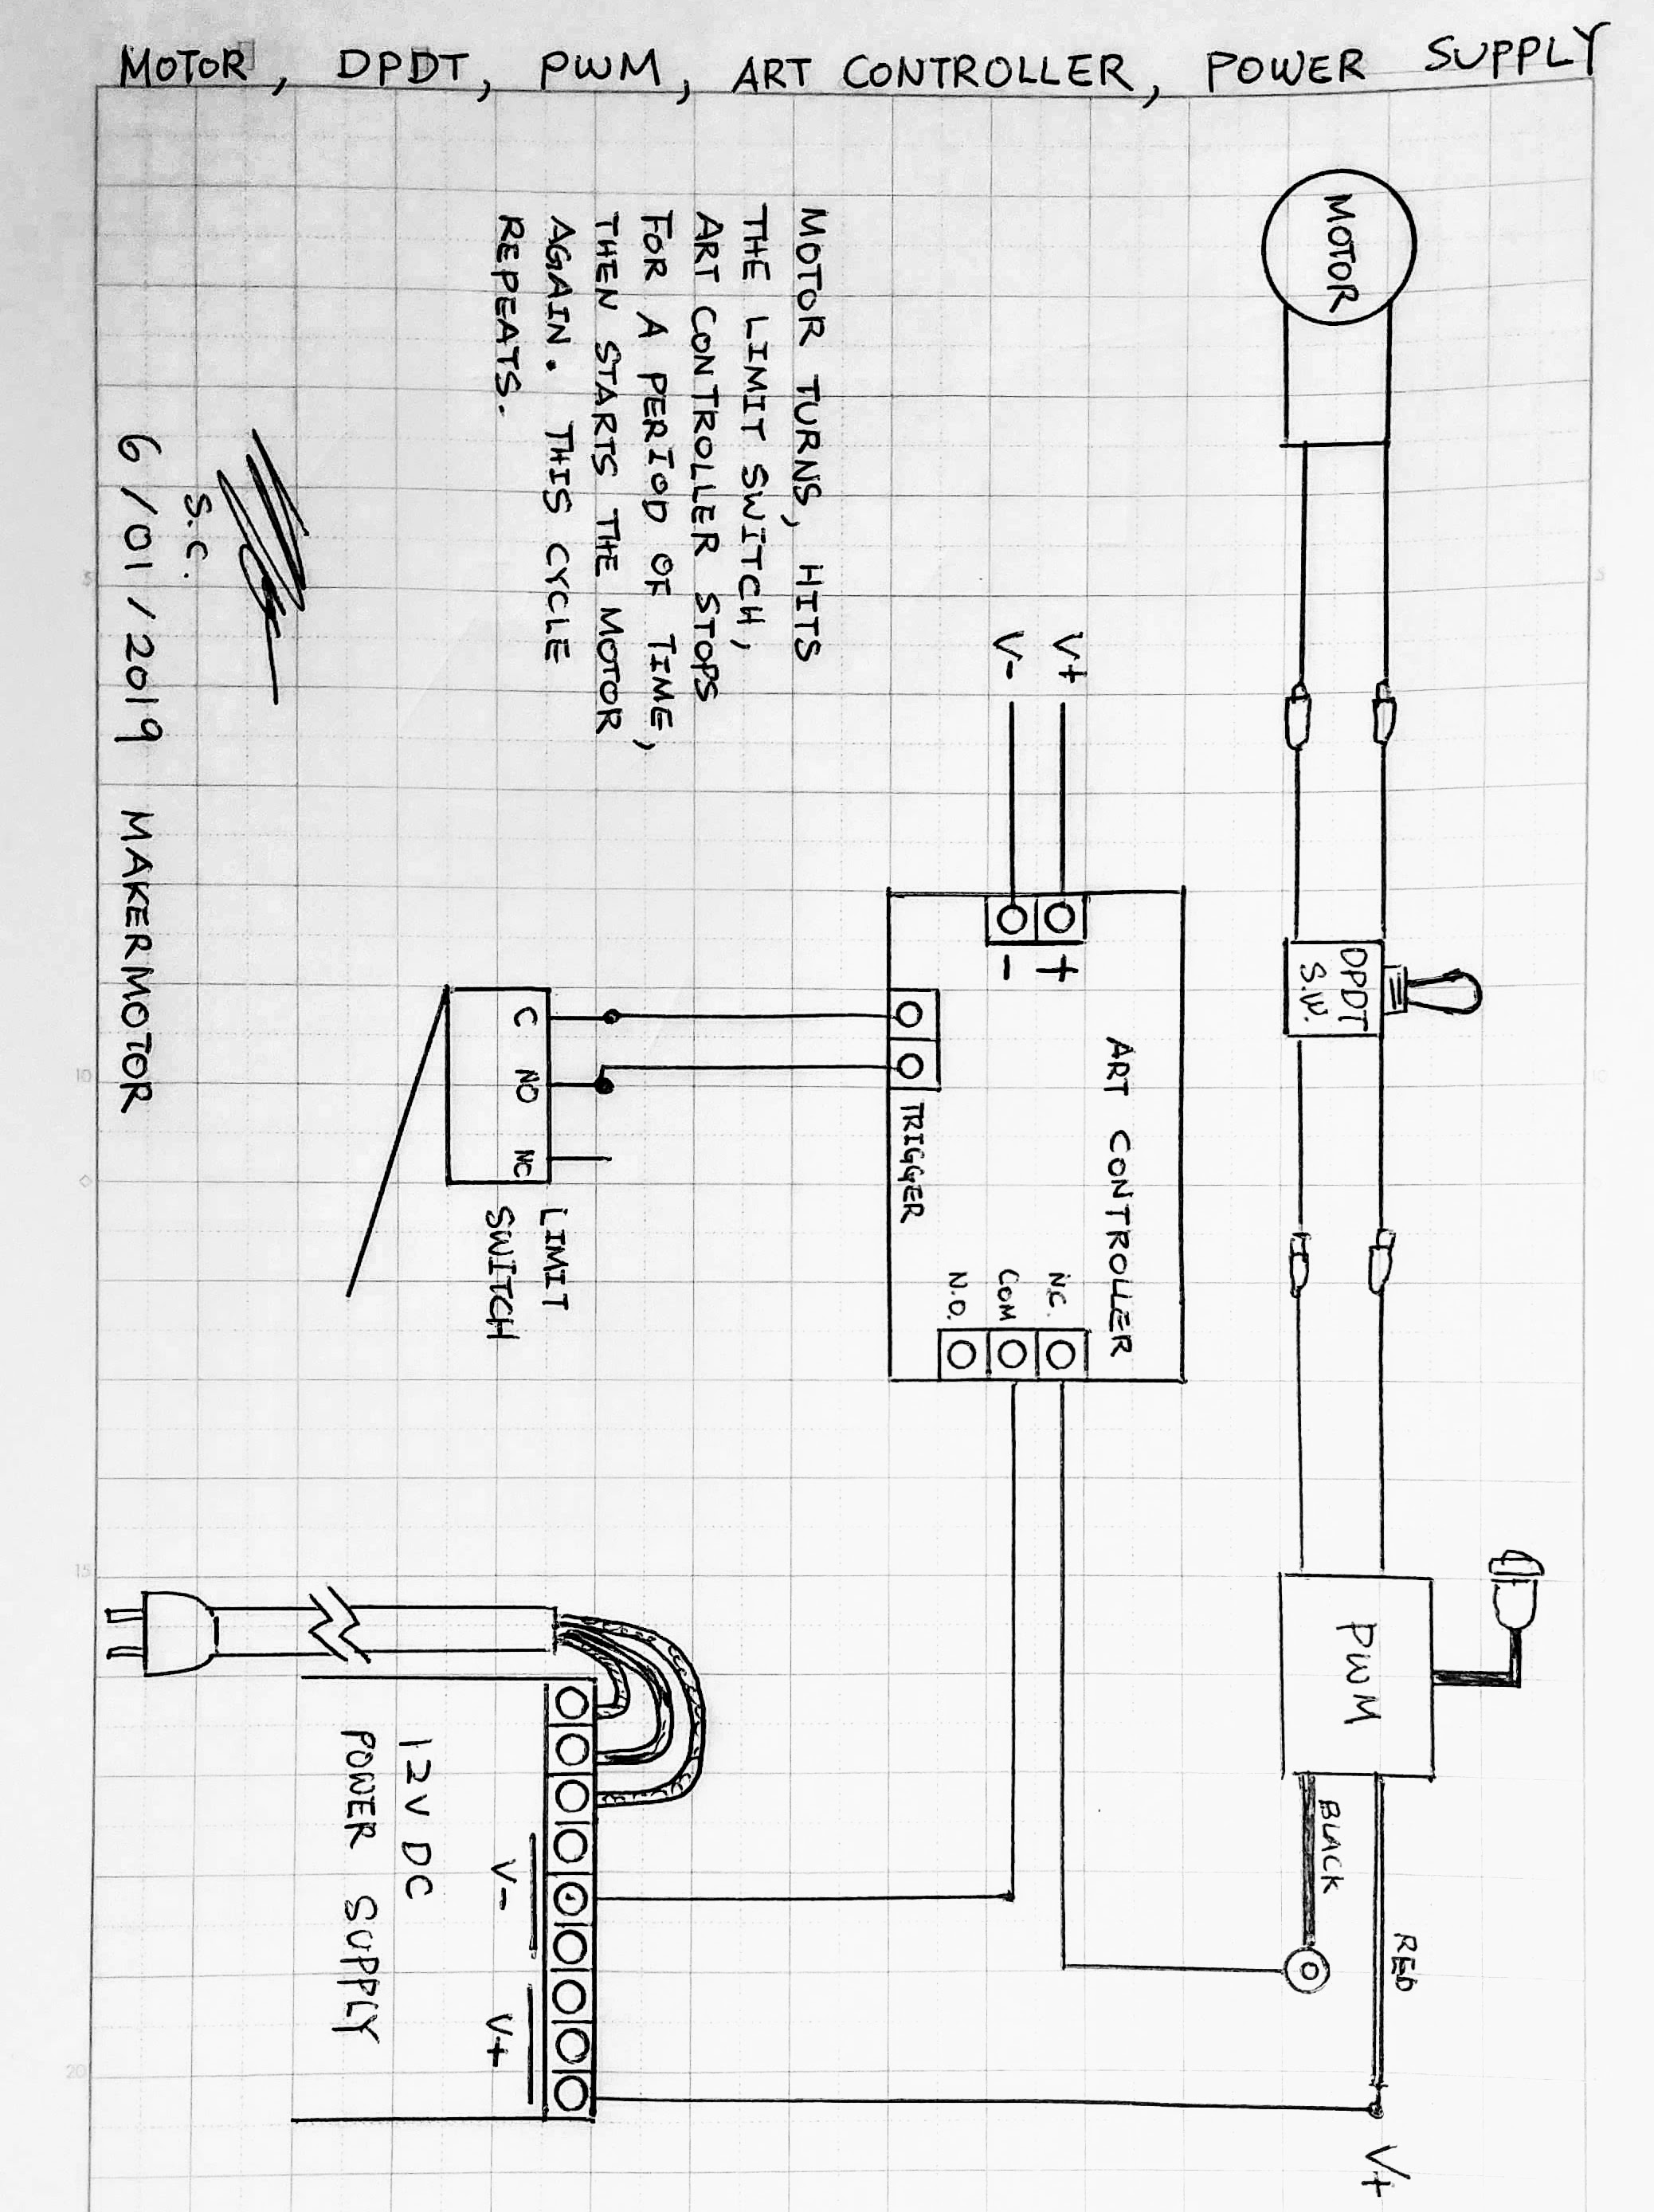 Wiring Diagram For Time Delay Relay